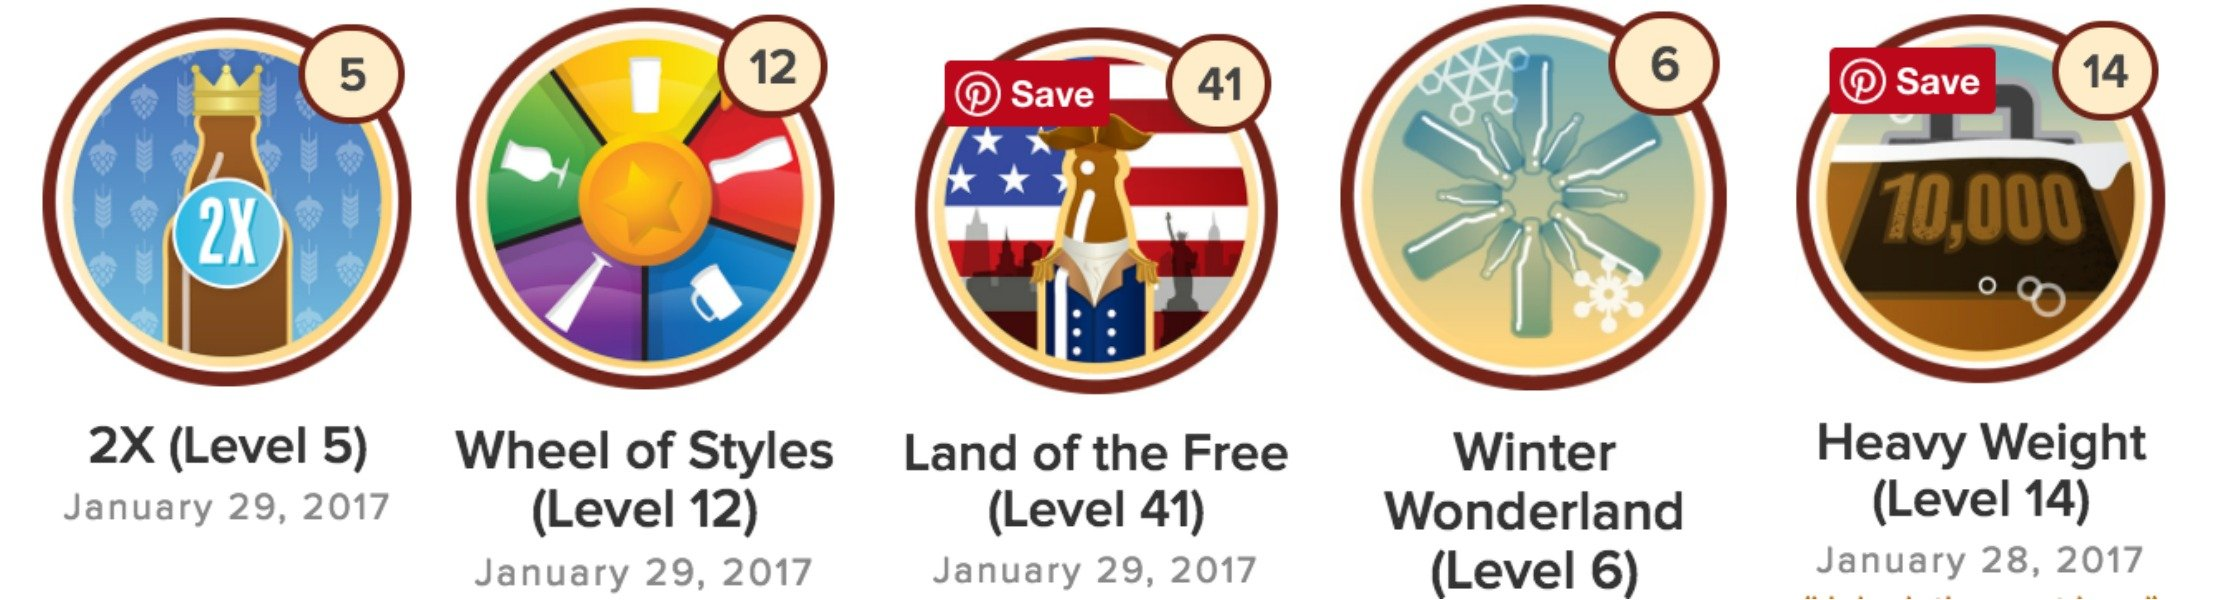 untappd-badges